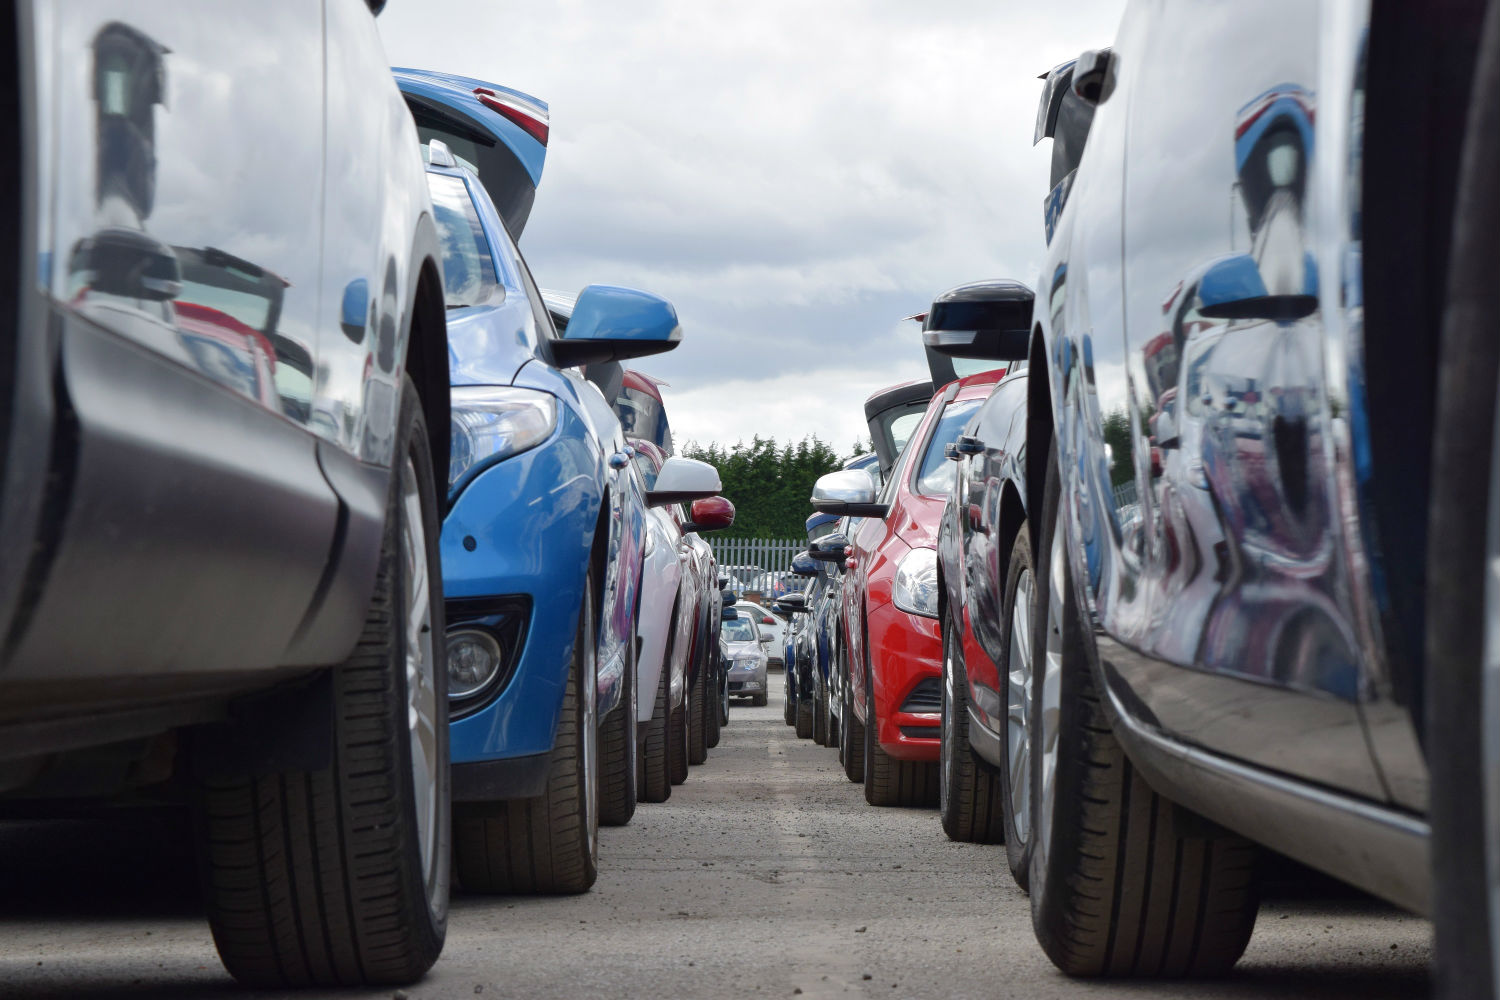 Vehicles prepared for auction at Manheim